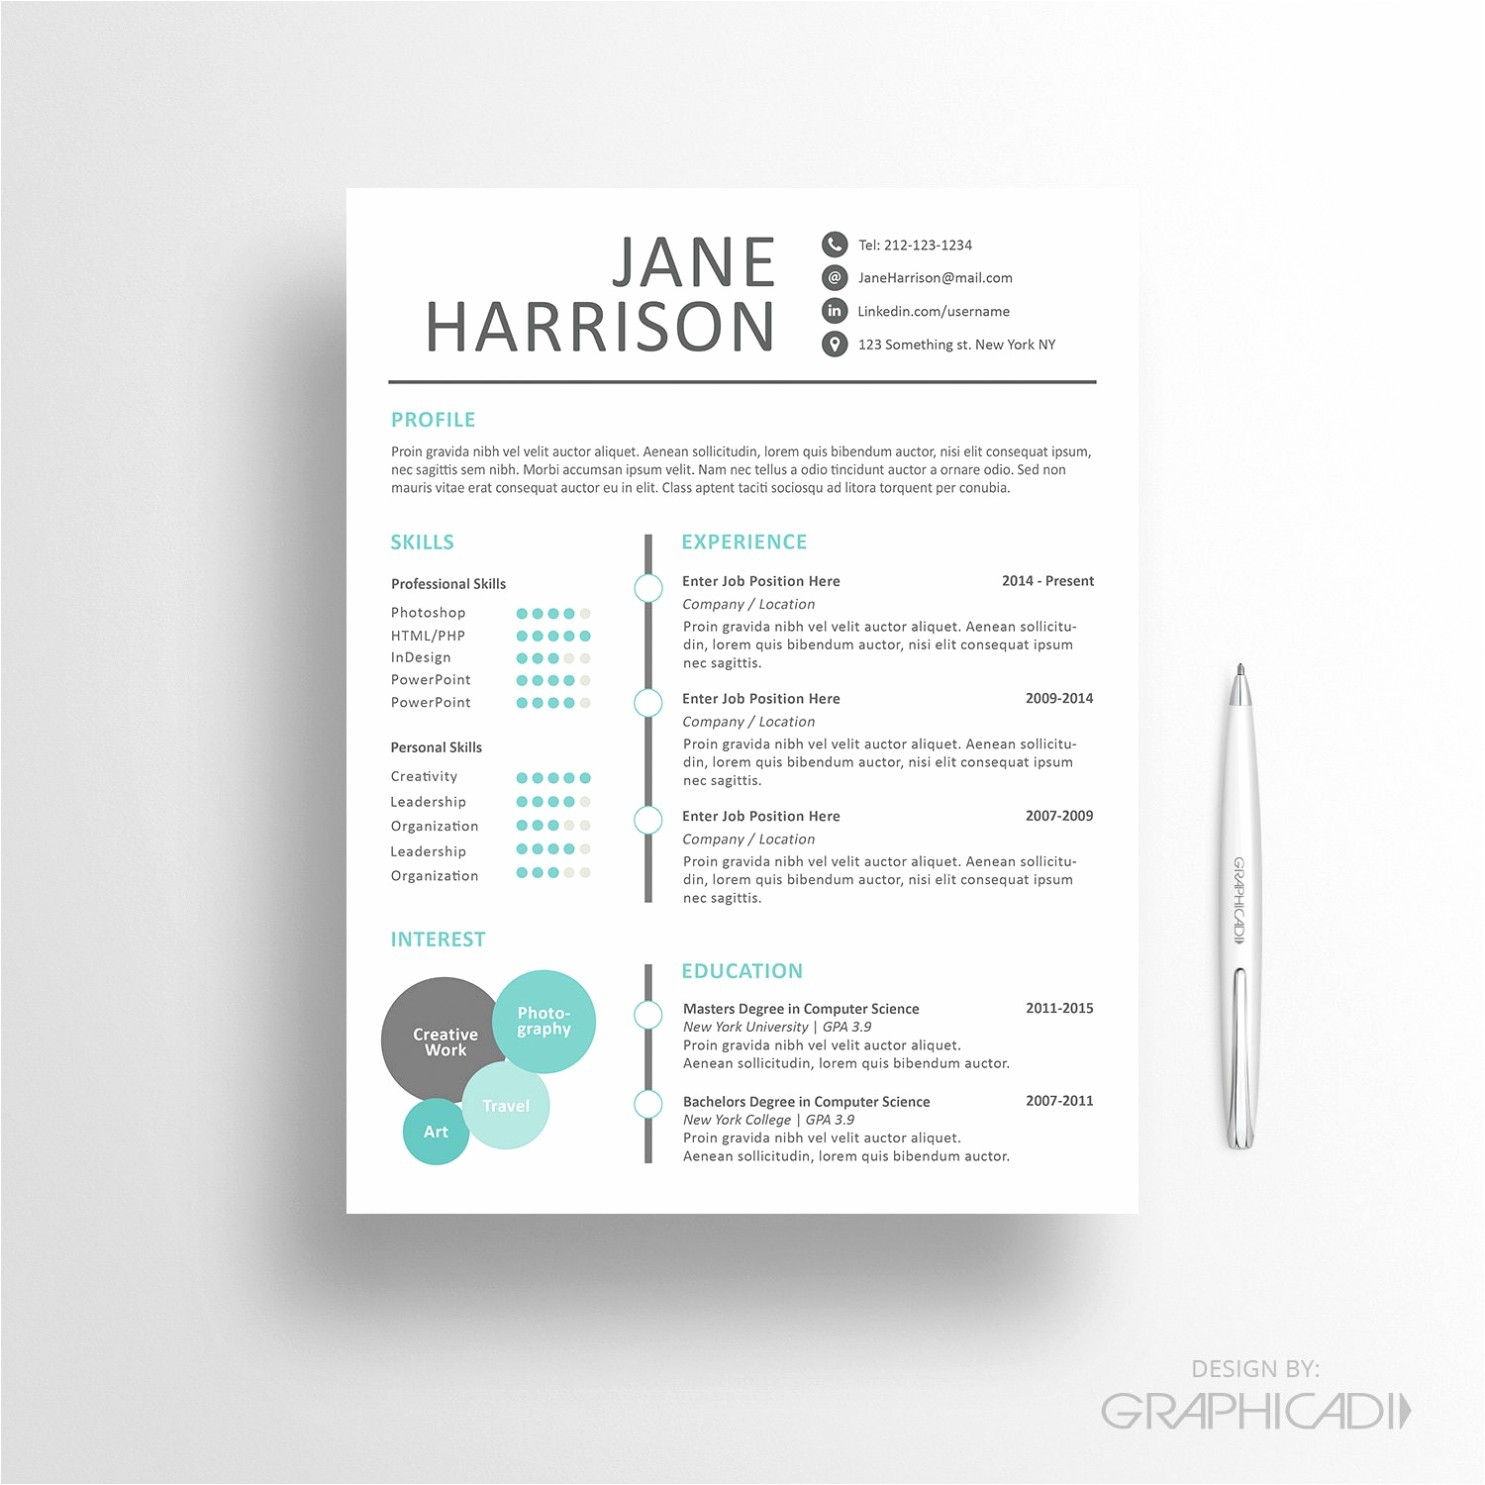 Resume Introduction Letter - Fun Cover Letter Inspirationa Best Resume Cover Letter Cover Letter